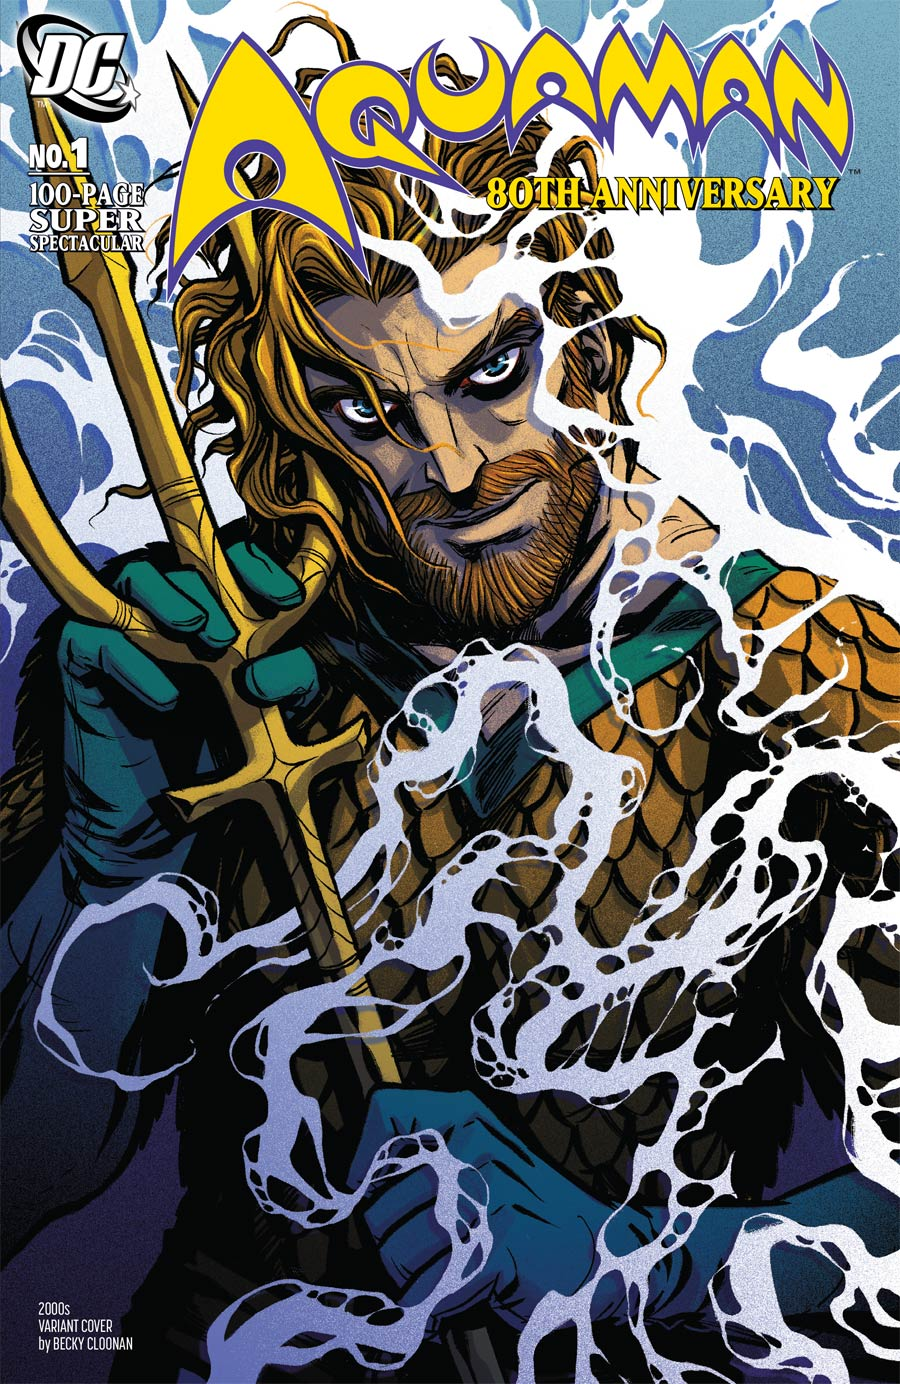 Aquaman-80th-Anniversary-100-Page-Spectacular-1-spoilers-0-8-2000s Aquaman-80th-Anniversary-100-Page-Spectacular-1-spoilers-0-8-2000s